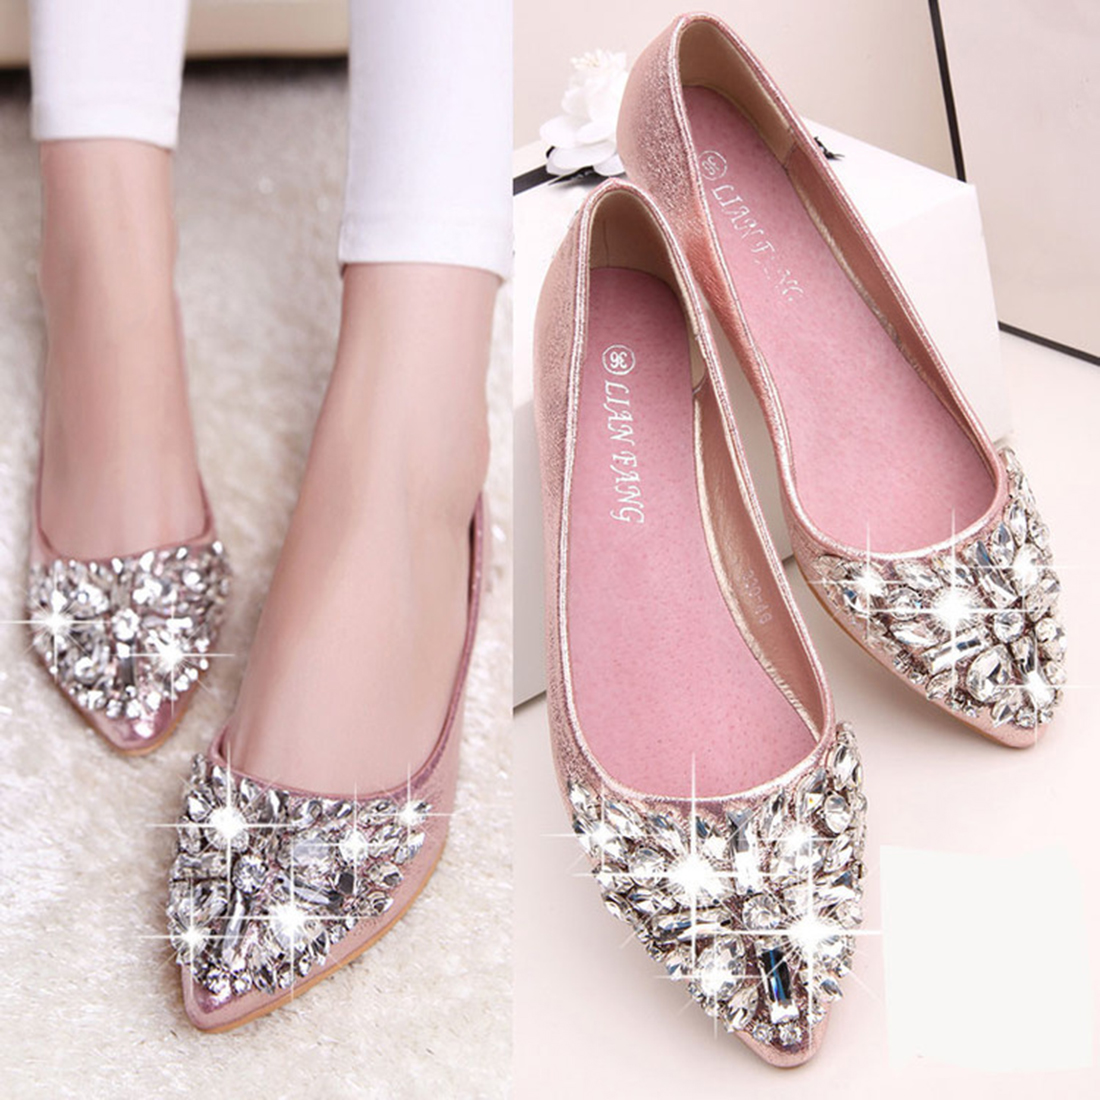 2019 New Women Flat Shoes Shiny Crystal Ballet Shoes Pointy Toe Bling Rhinestone Flats Pink Silver Casual Shoes Women Footwear